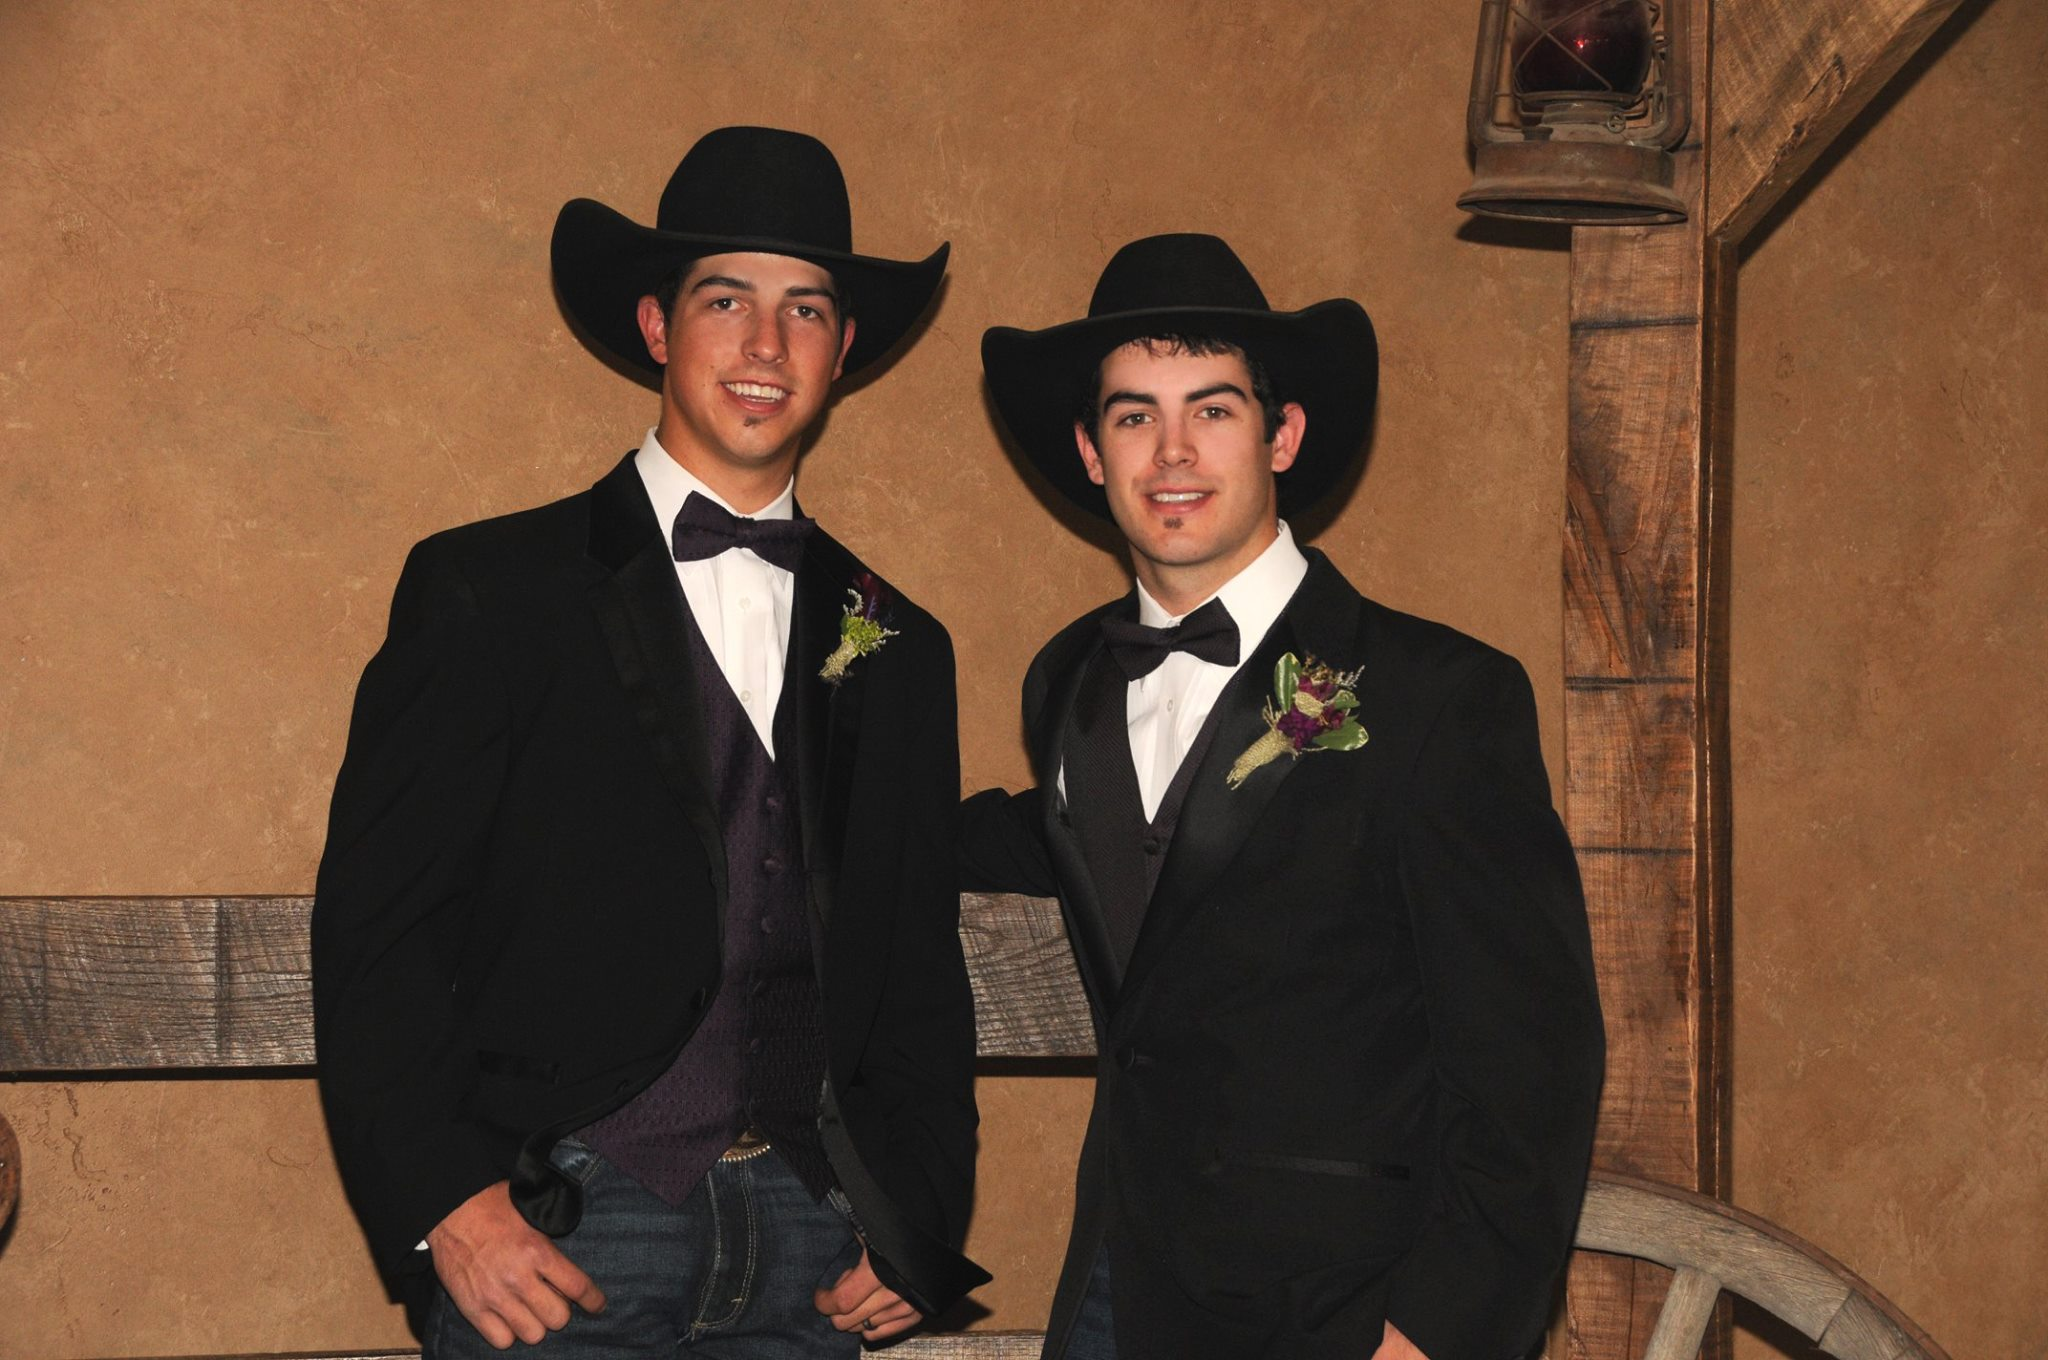 The bull riding brothers, Tim and Tyler Bingham of Honeyville, Utah.